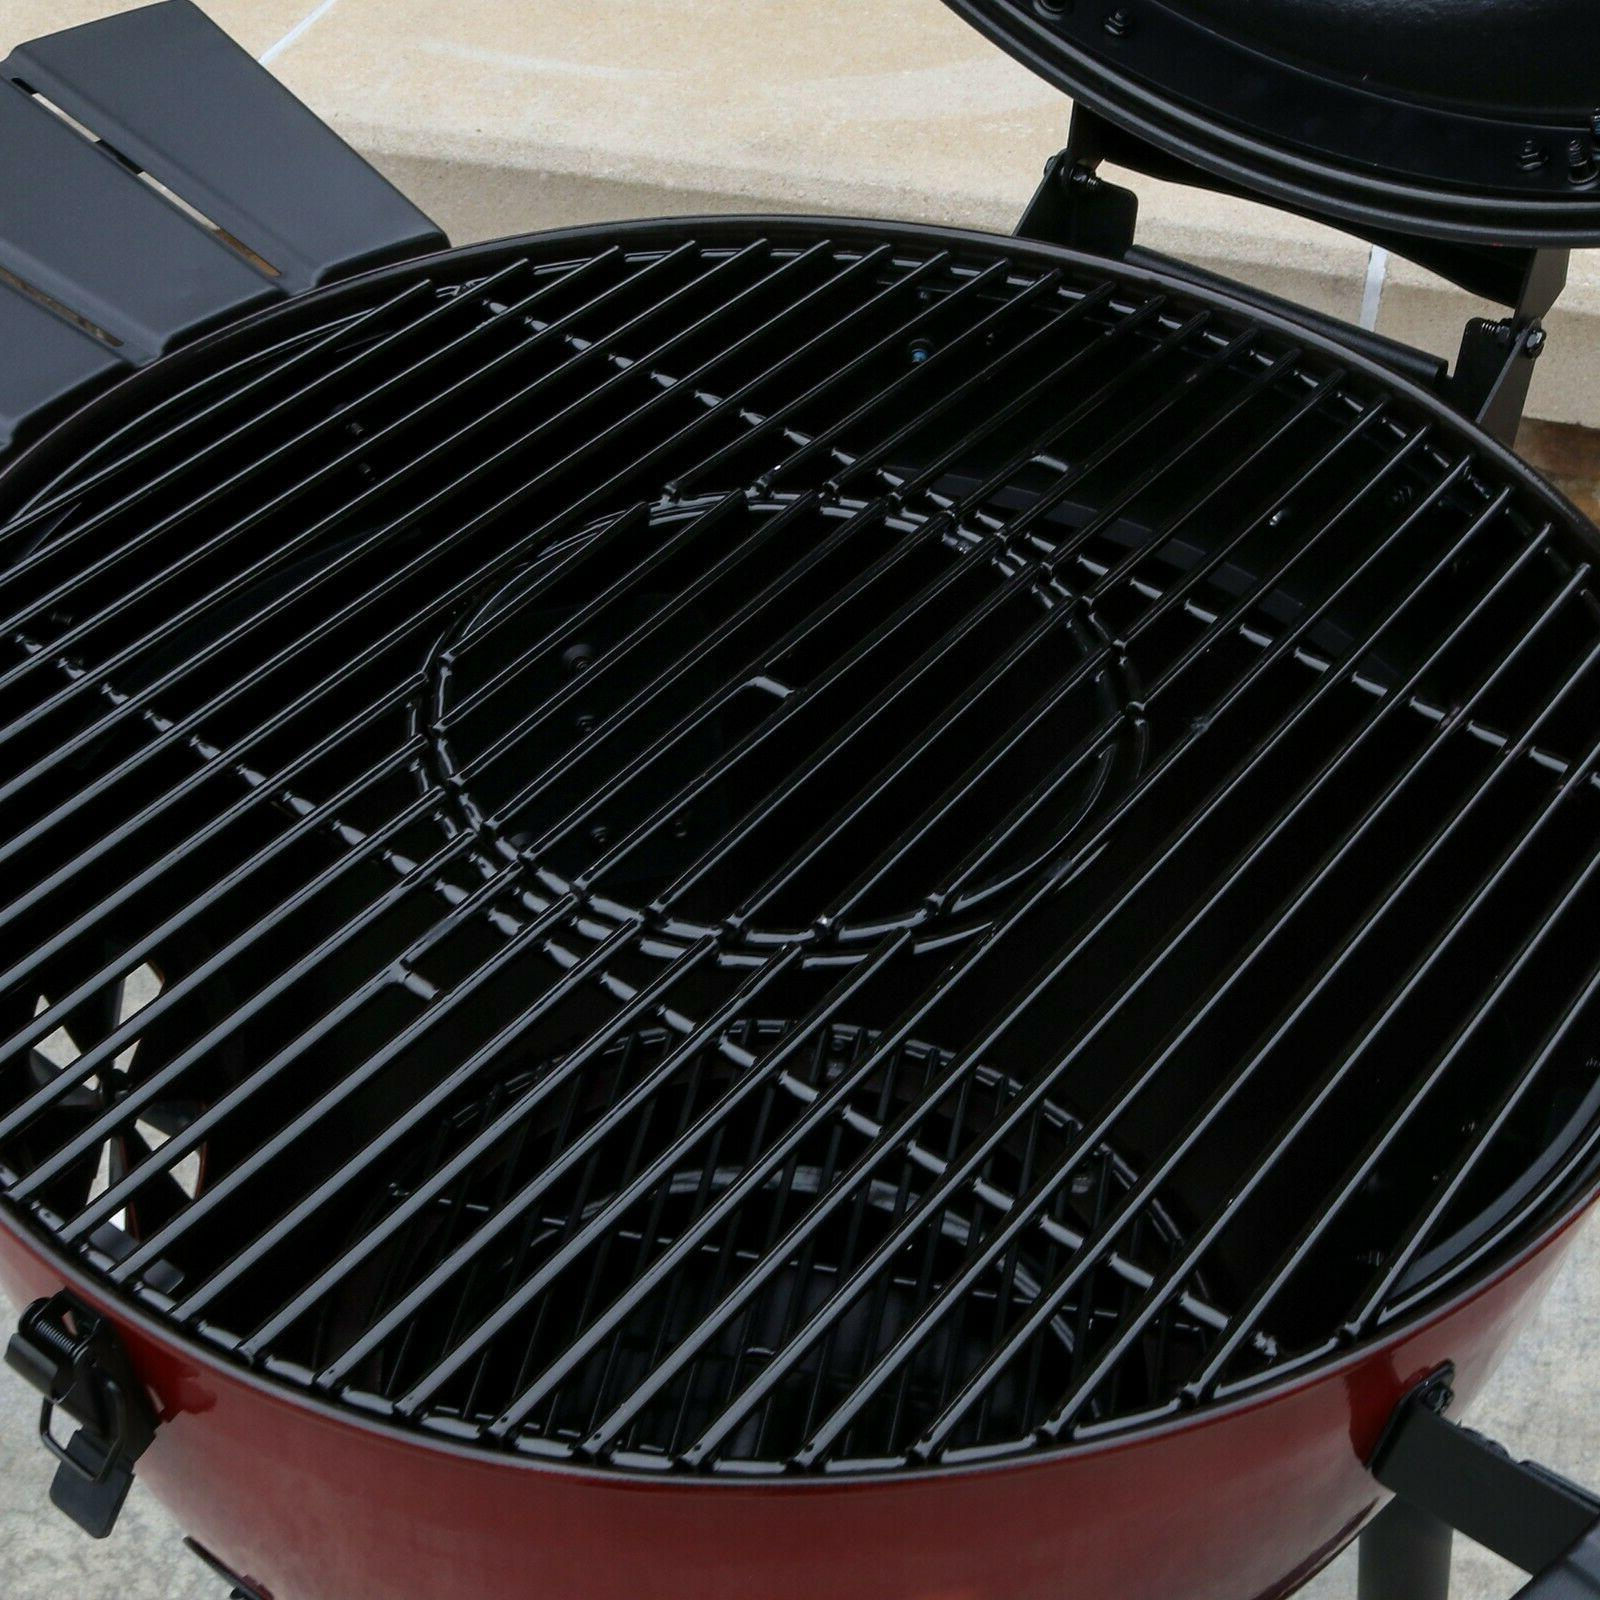 Premium Outdoor Barbecue Cooking Burgers